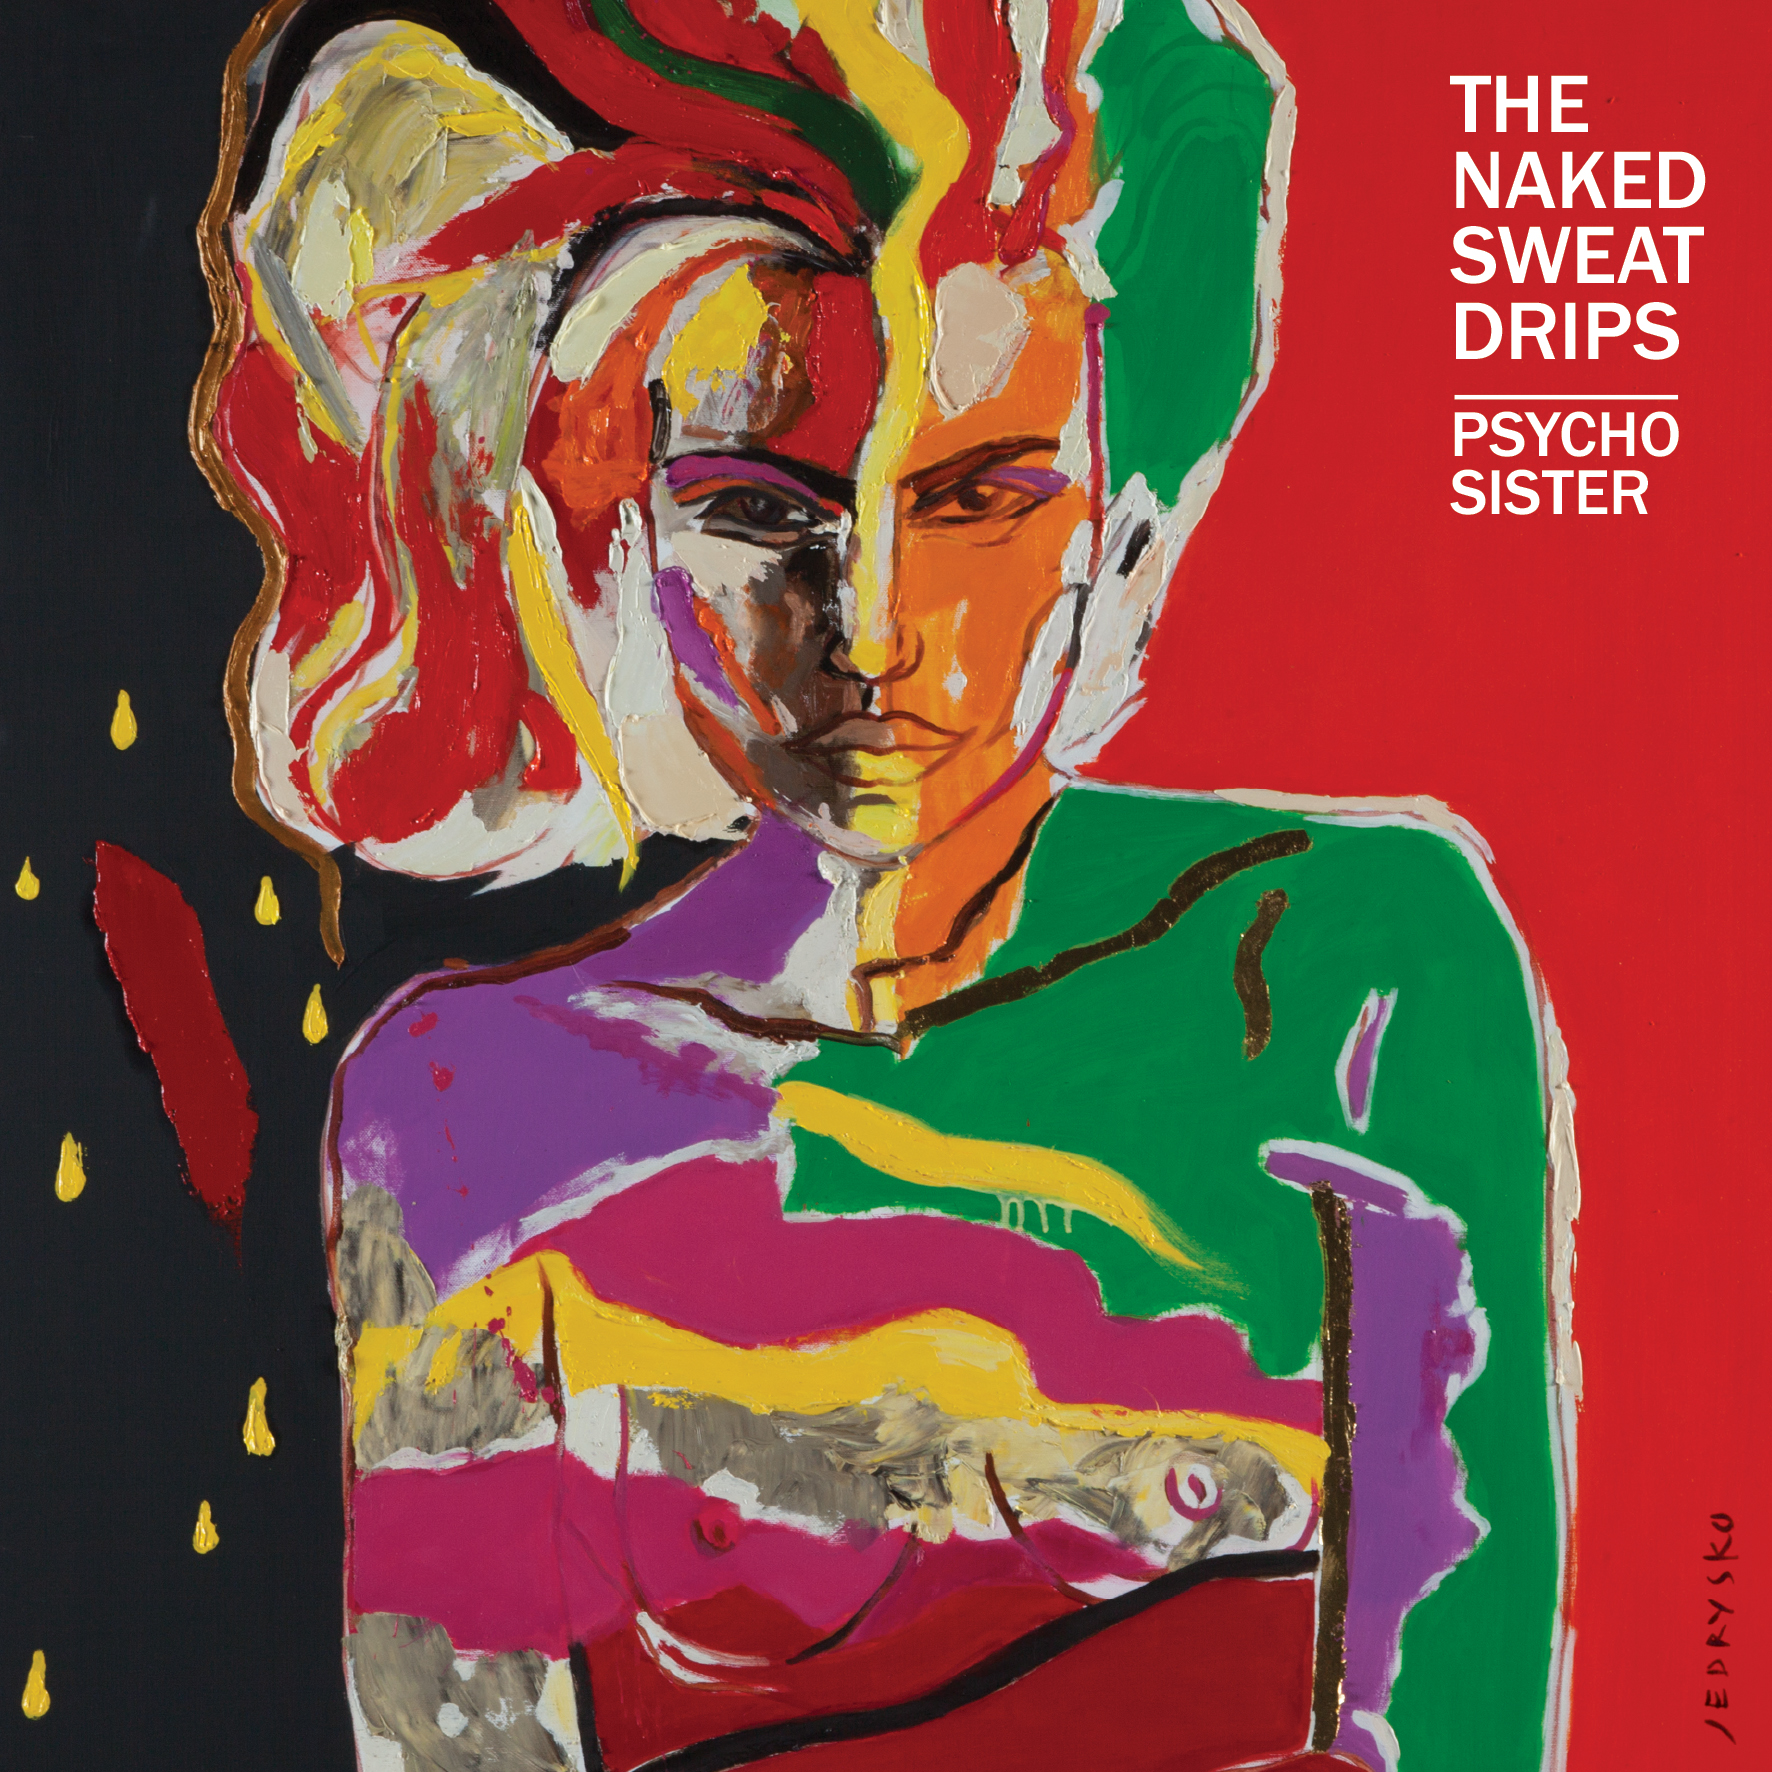 The Naked Sweat Drips